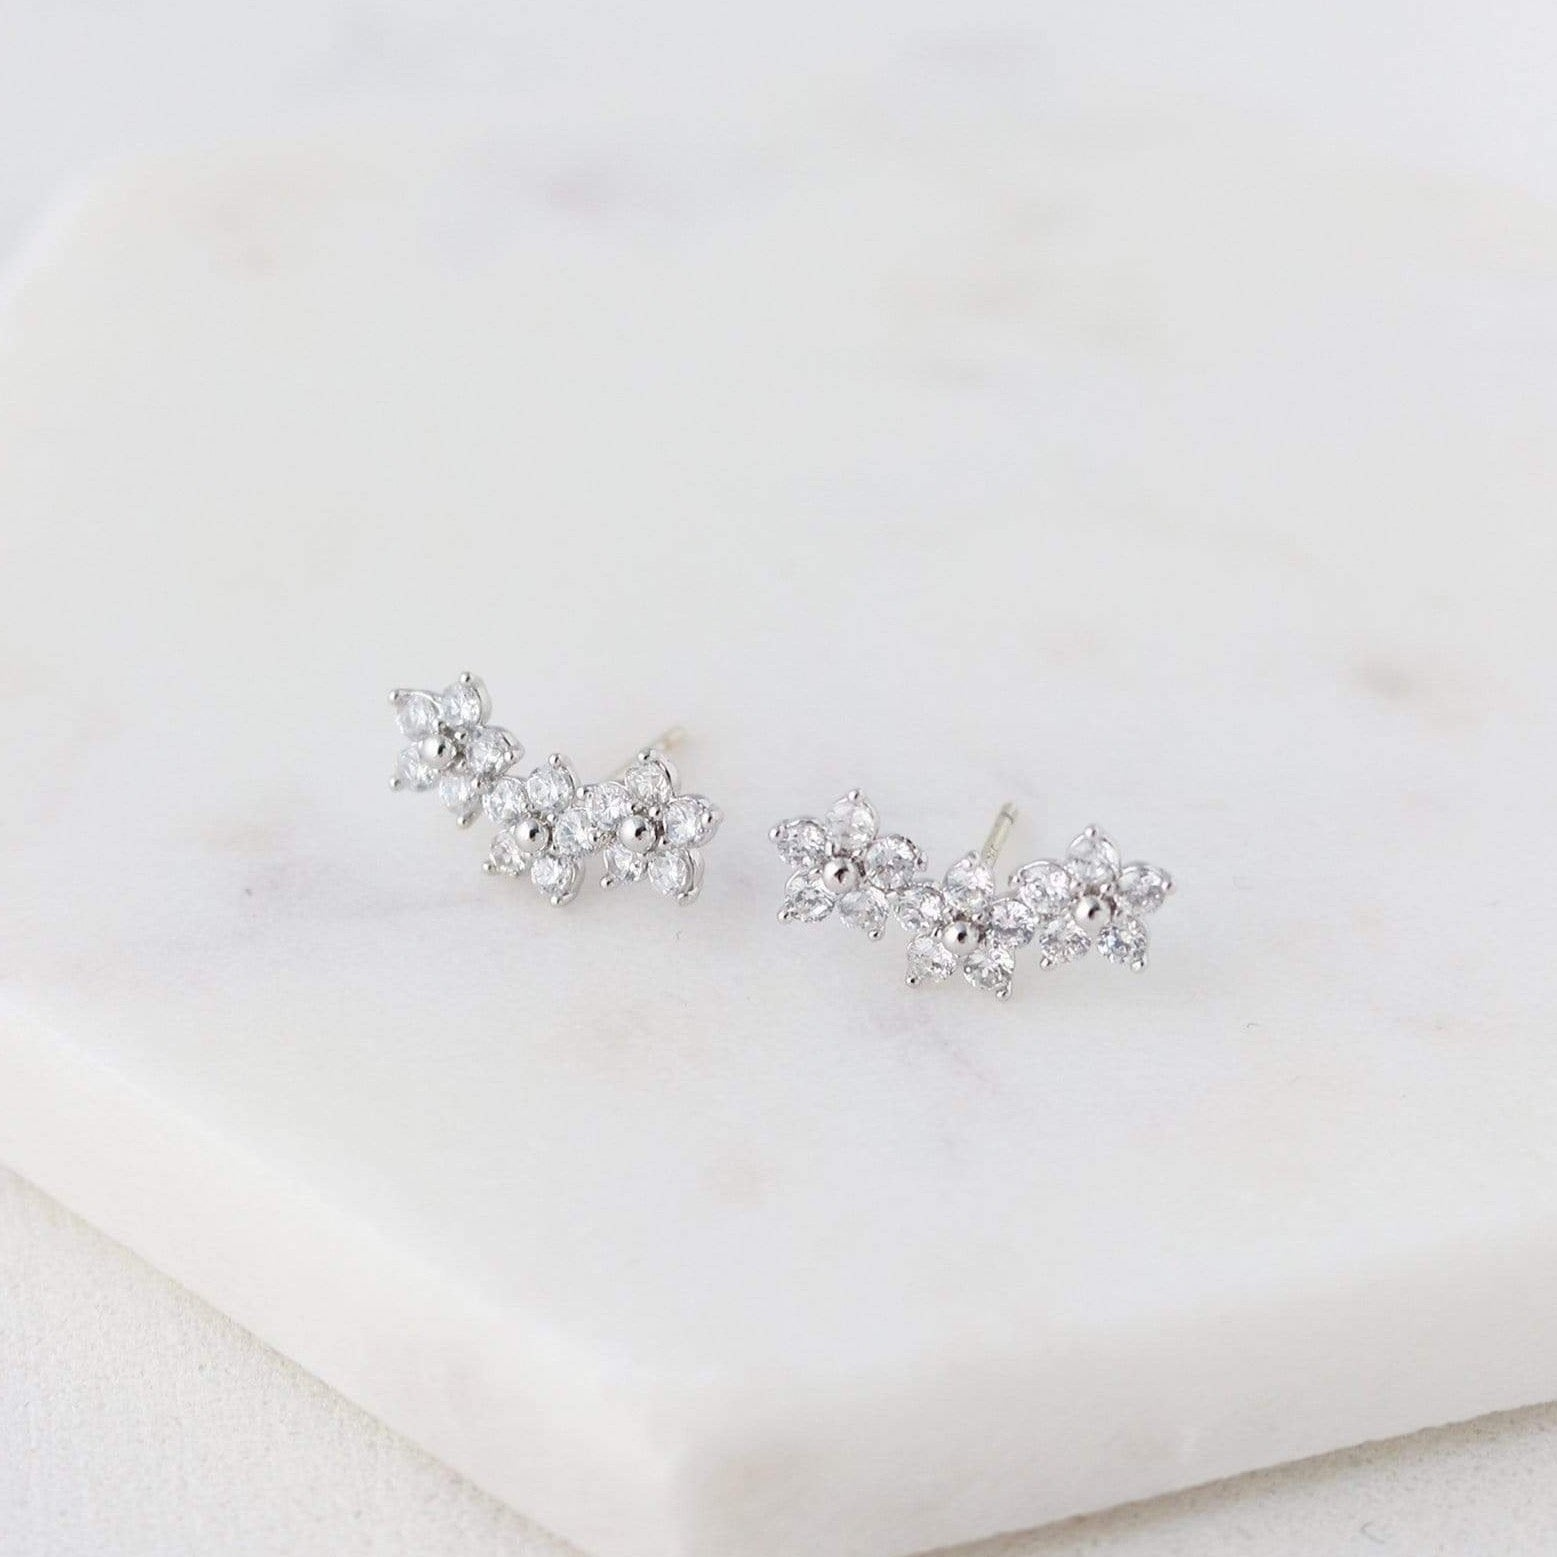 LOVER'S TEMPO - BLOSSOM CLIMBER EARRINGS IN SILVER